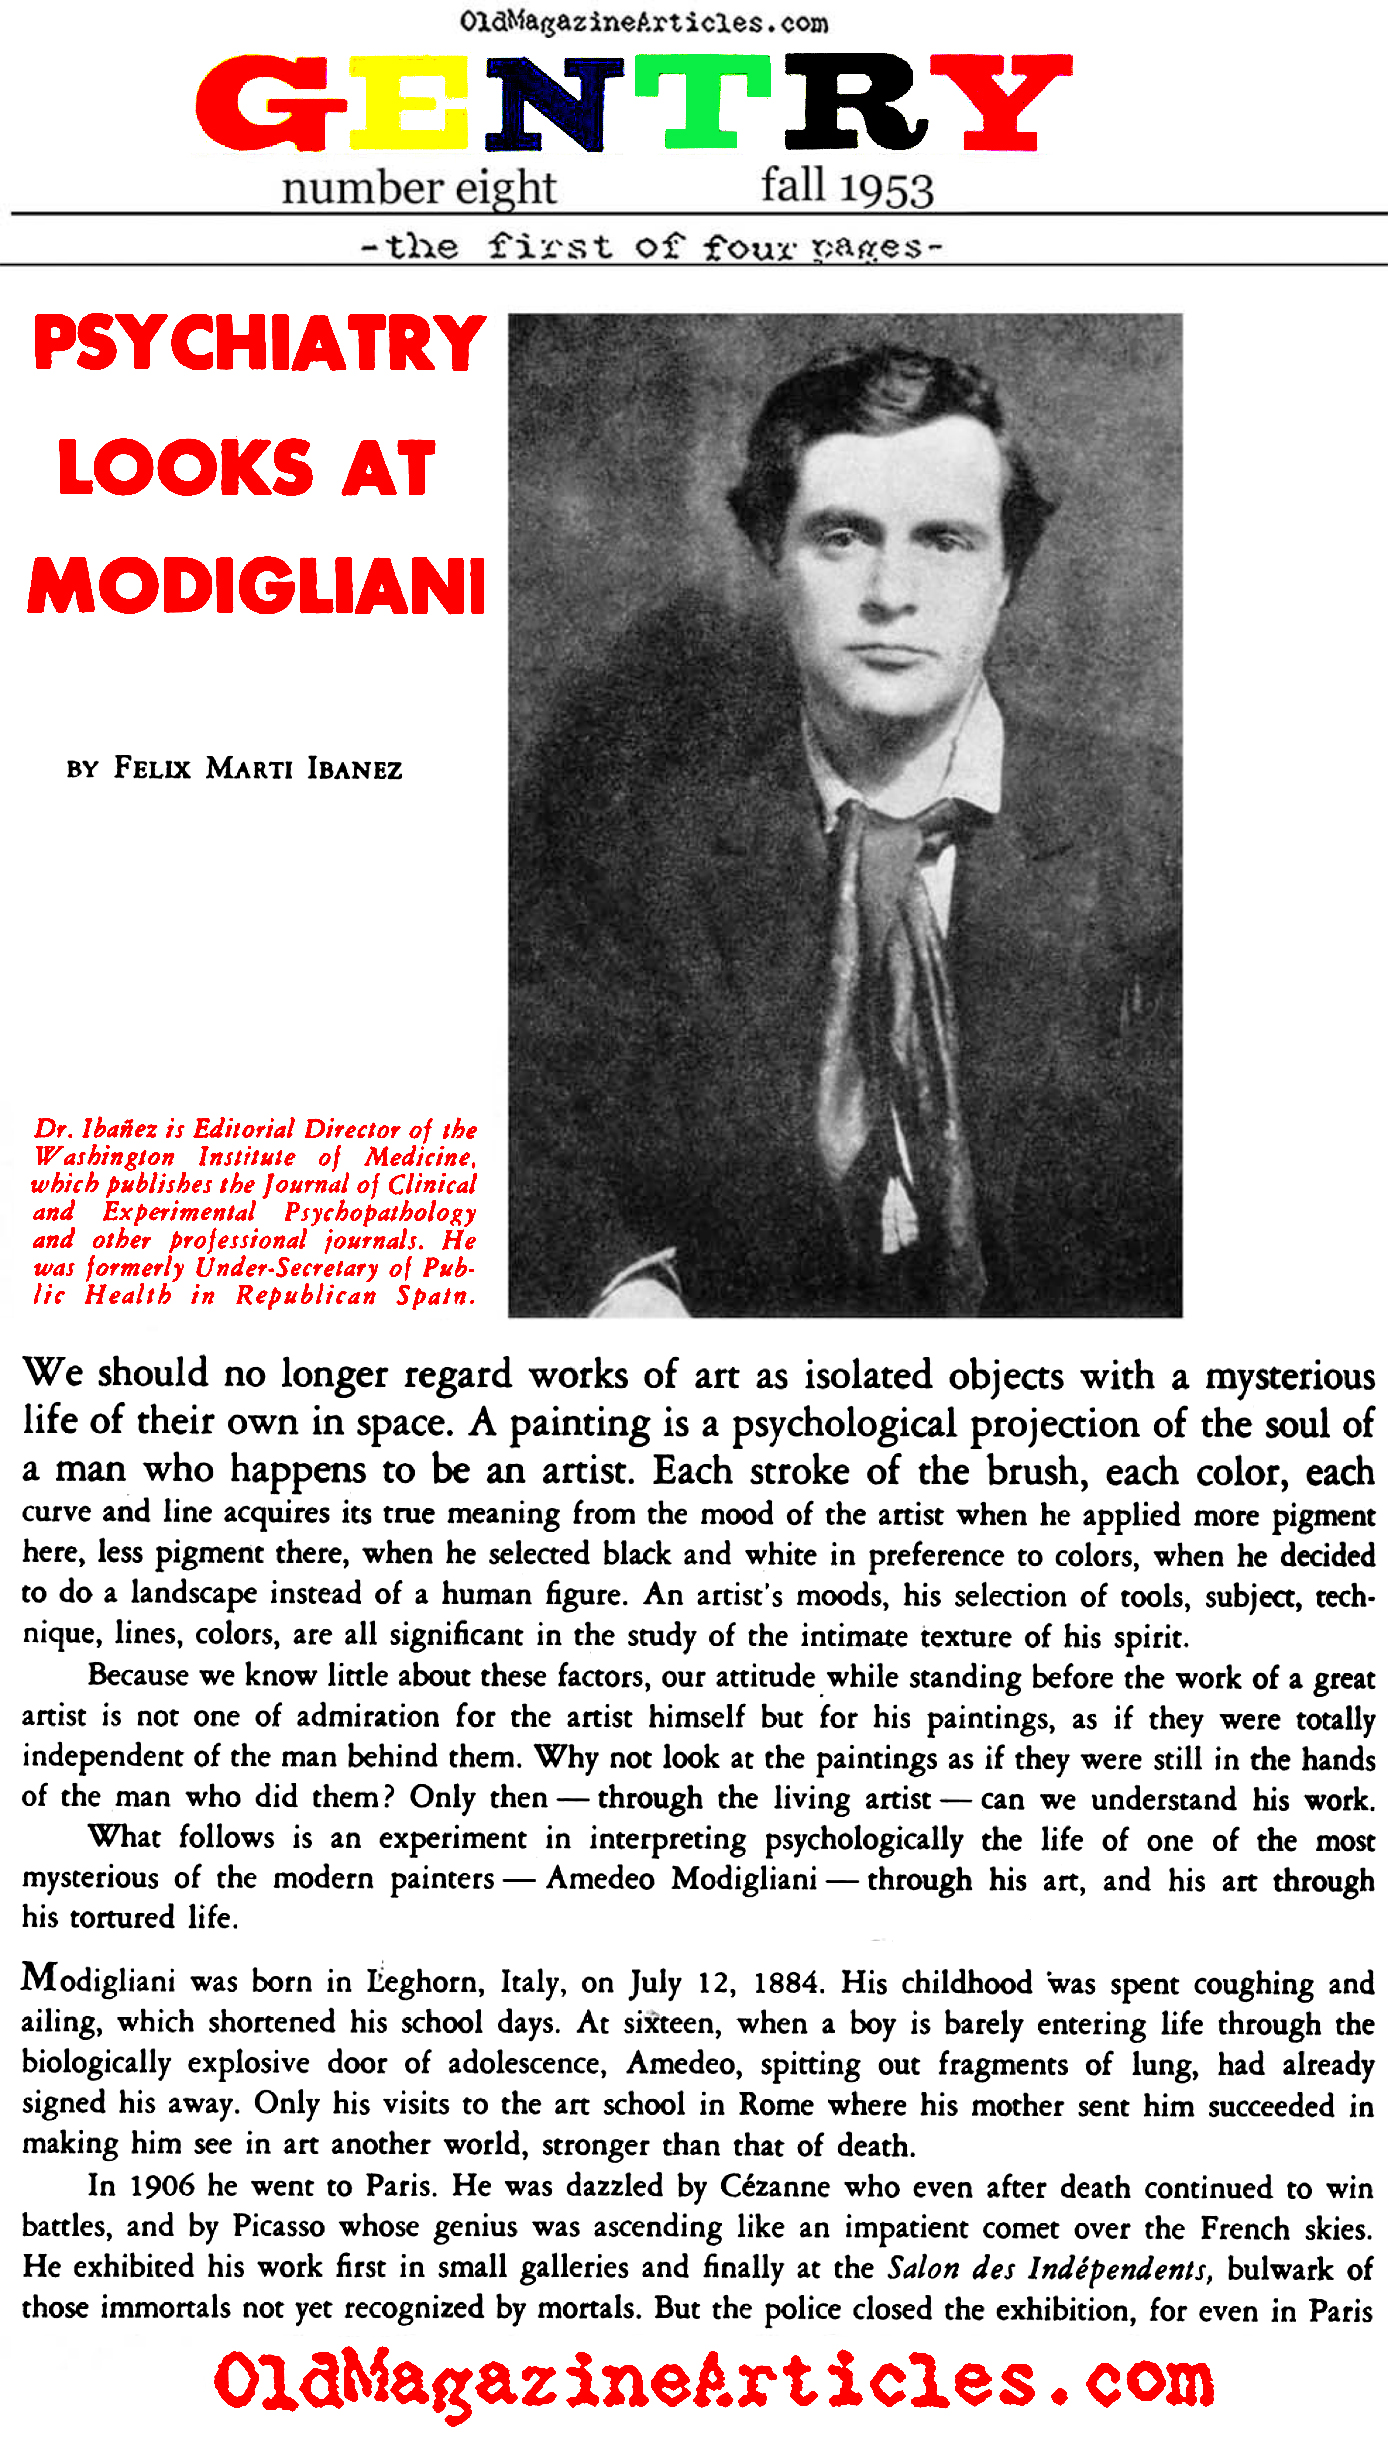 The Psycho-Sexual Struggle within Amedeo Modigliani (Gentry Magazine, 1953)